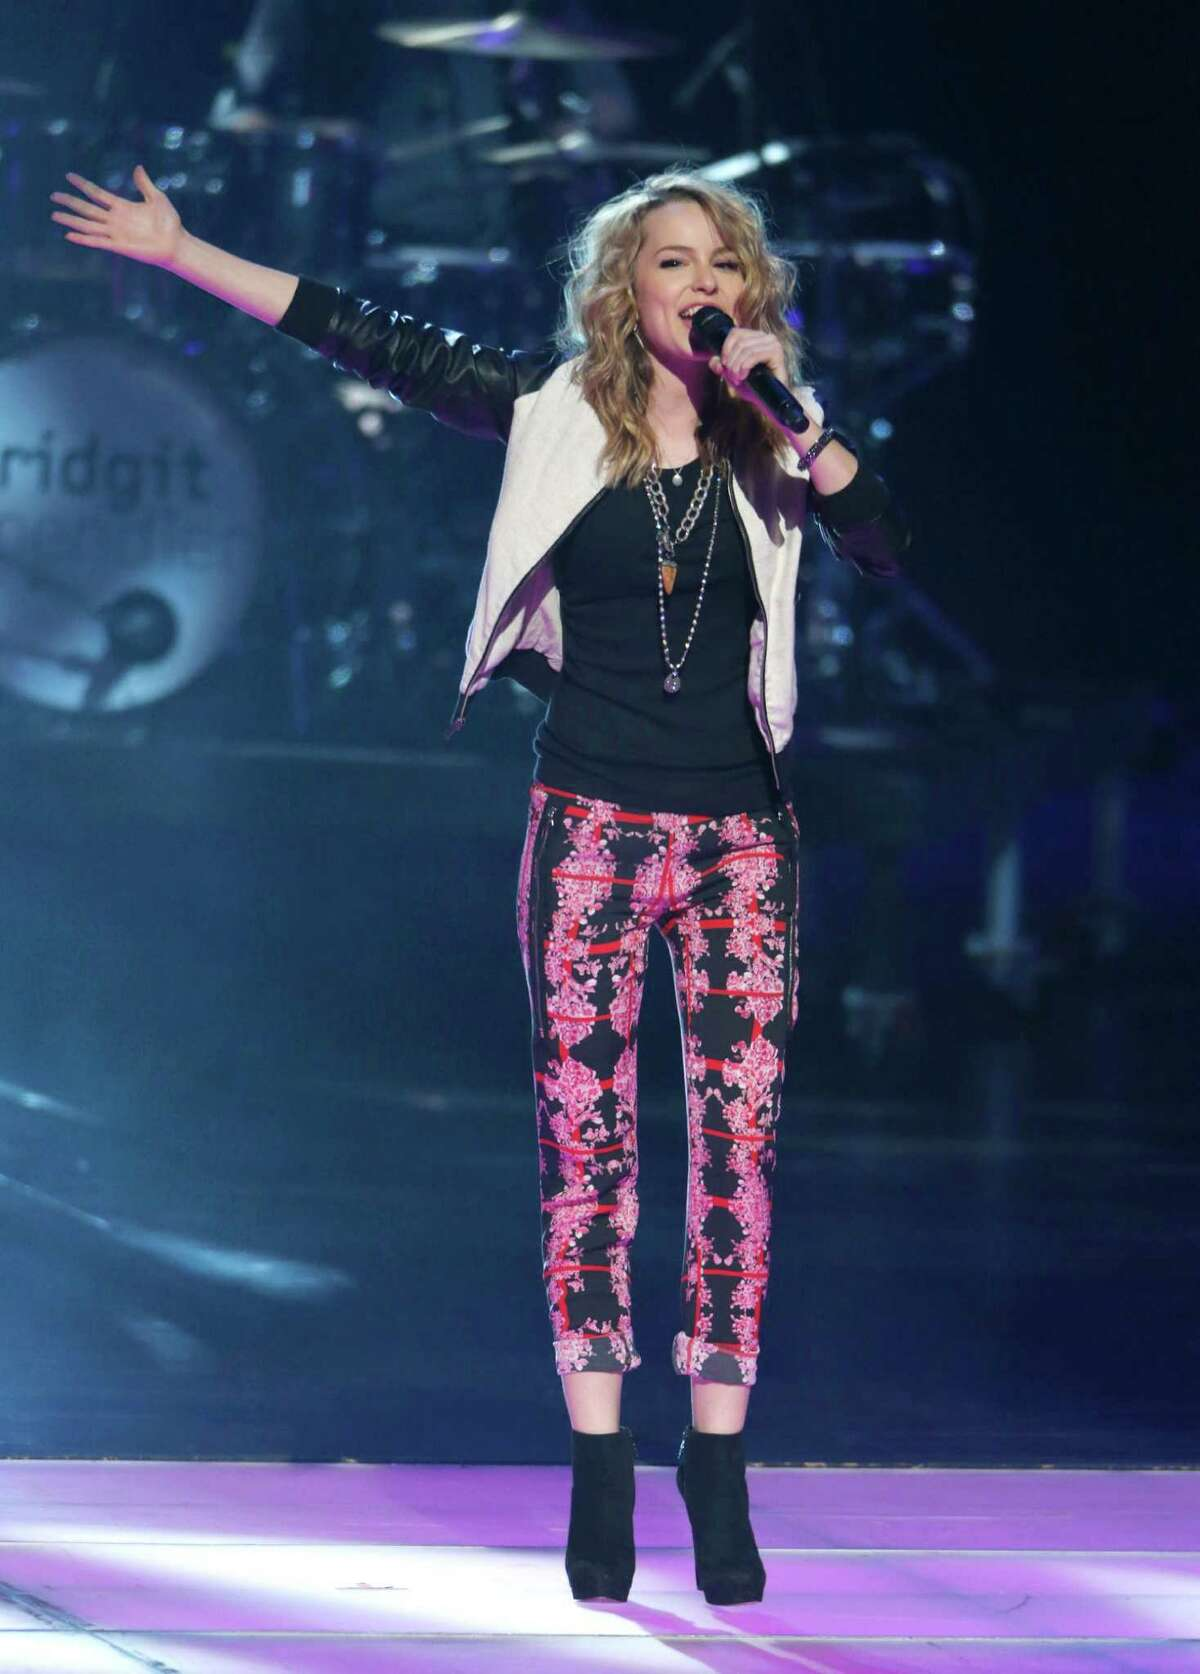 Bridgit Mendler performs onstage during the Radio Disney Music Awards at the Nokia Theatre on Saturday, April 27, 2013 in Los Angeles. (Photo by Todd Williamson /Invision/AP)